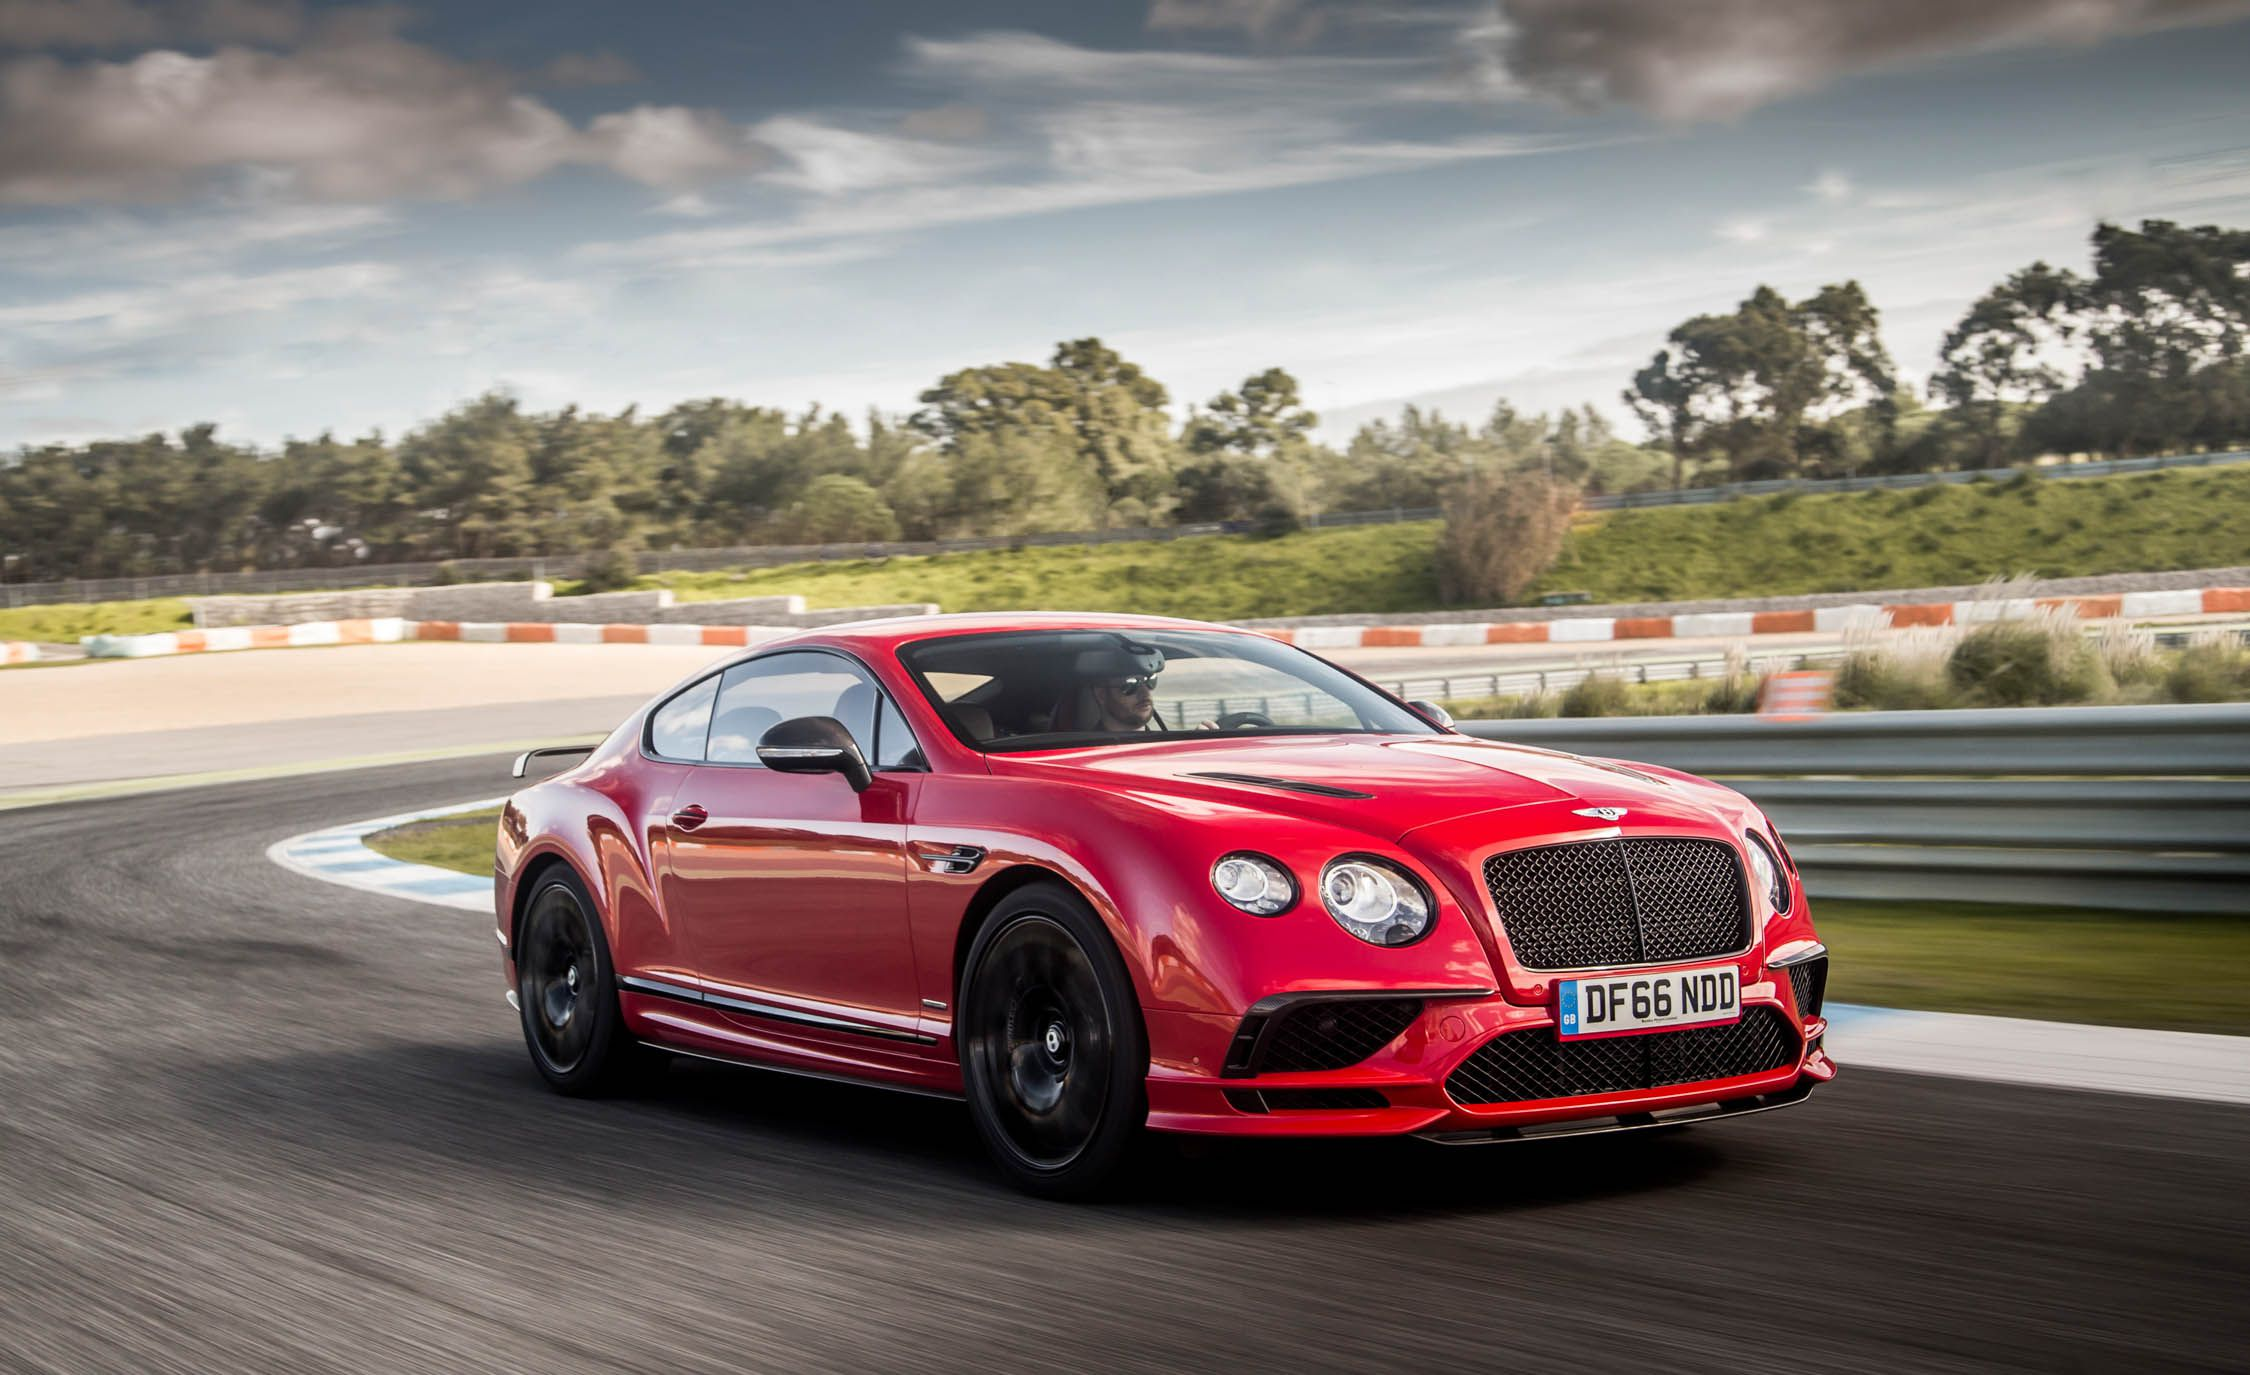 2018 Bentley Continental GT Supersports Coupe (Color: St. James Red) Front Three-Quarter Wallpapers (1)